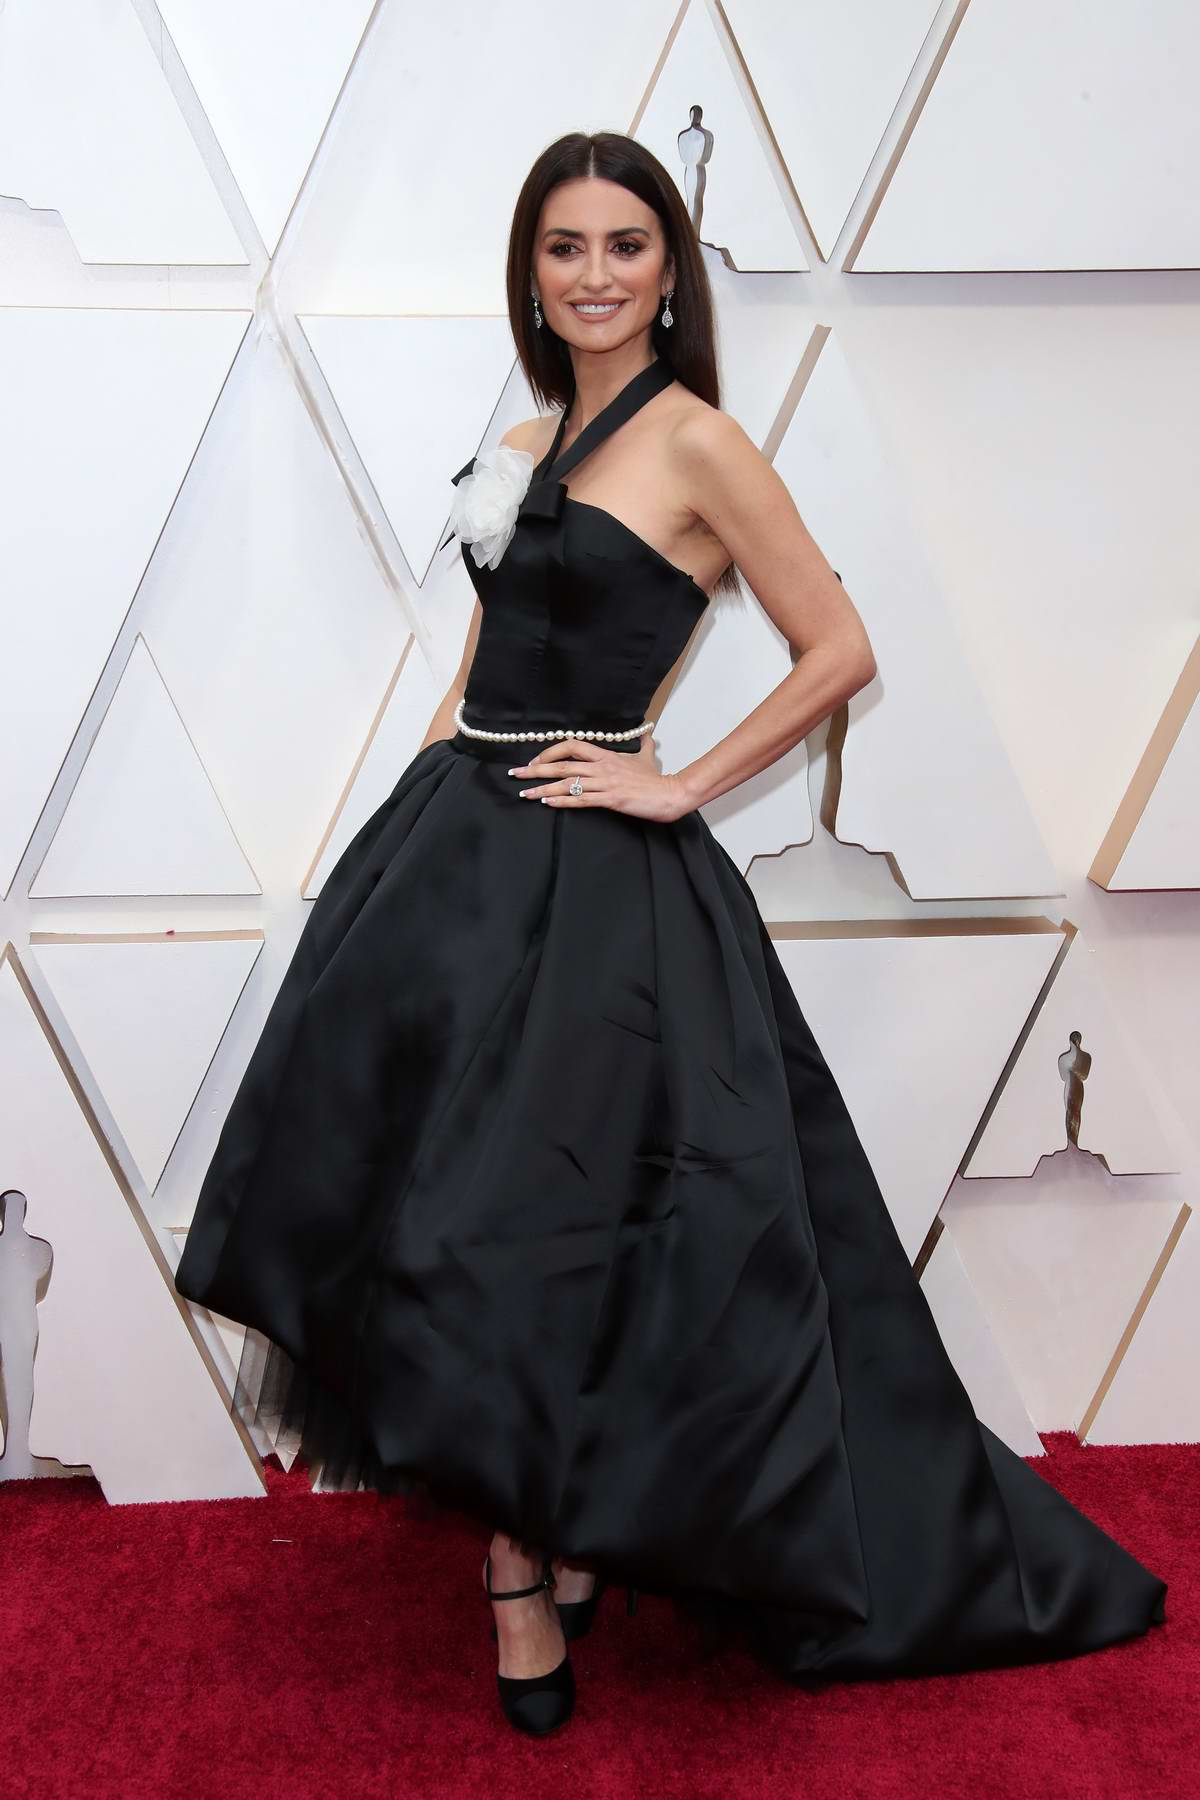 Penelope Cruz attends the 92nd Annual Academy Awards at Dolby Theatre in Los Angeles